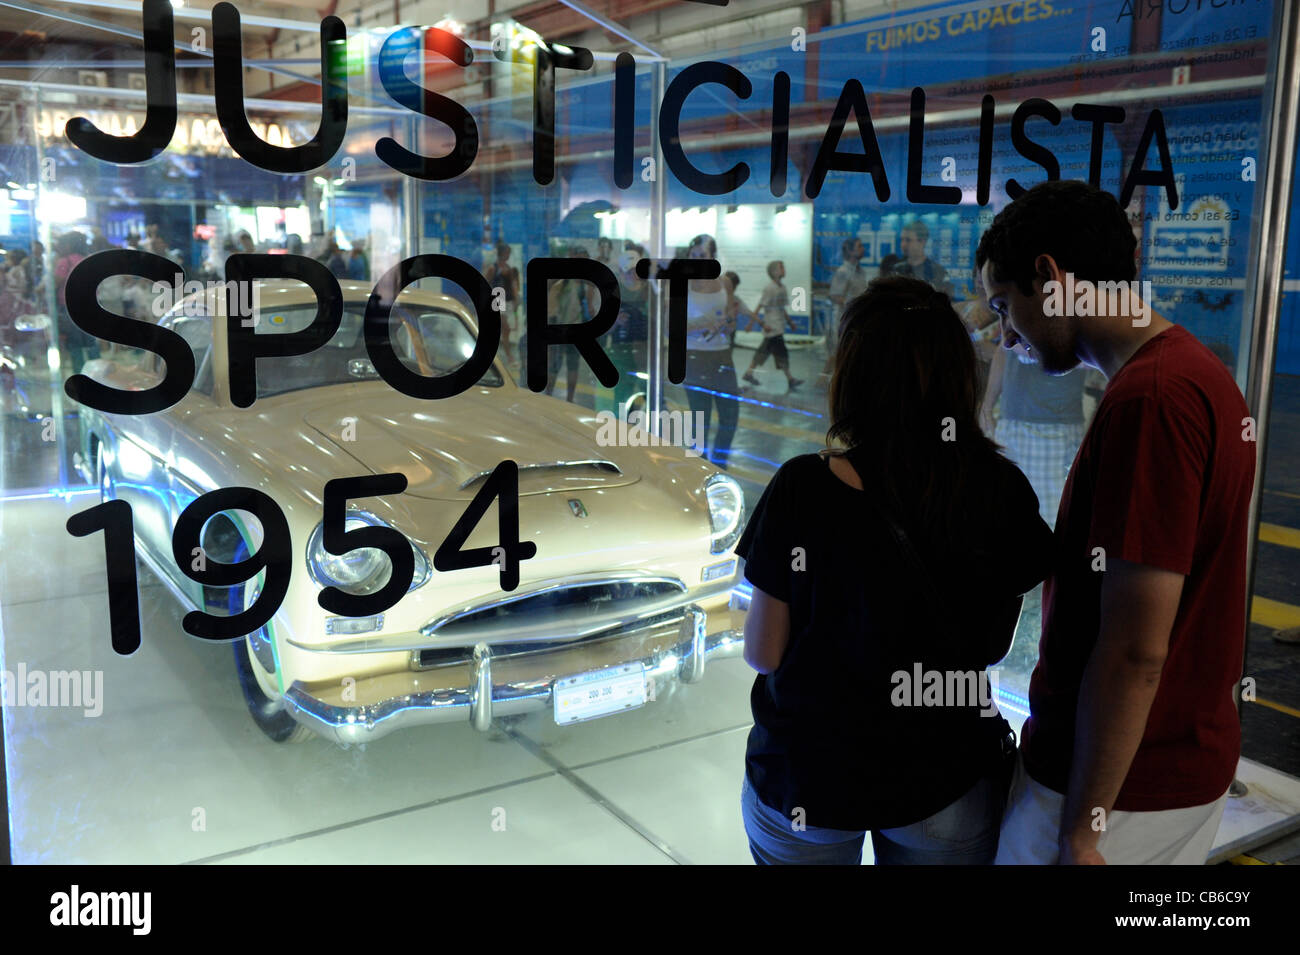 El Justicialista, sports car made in Argentina during the 1950's at closure event at Tecnopolis Science and - Stock Image